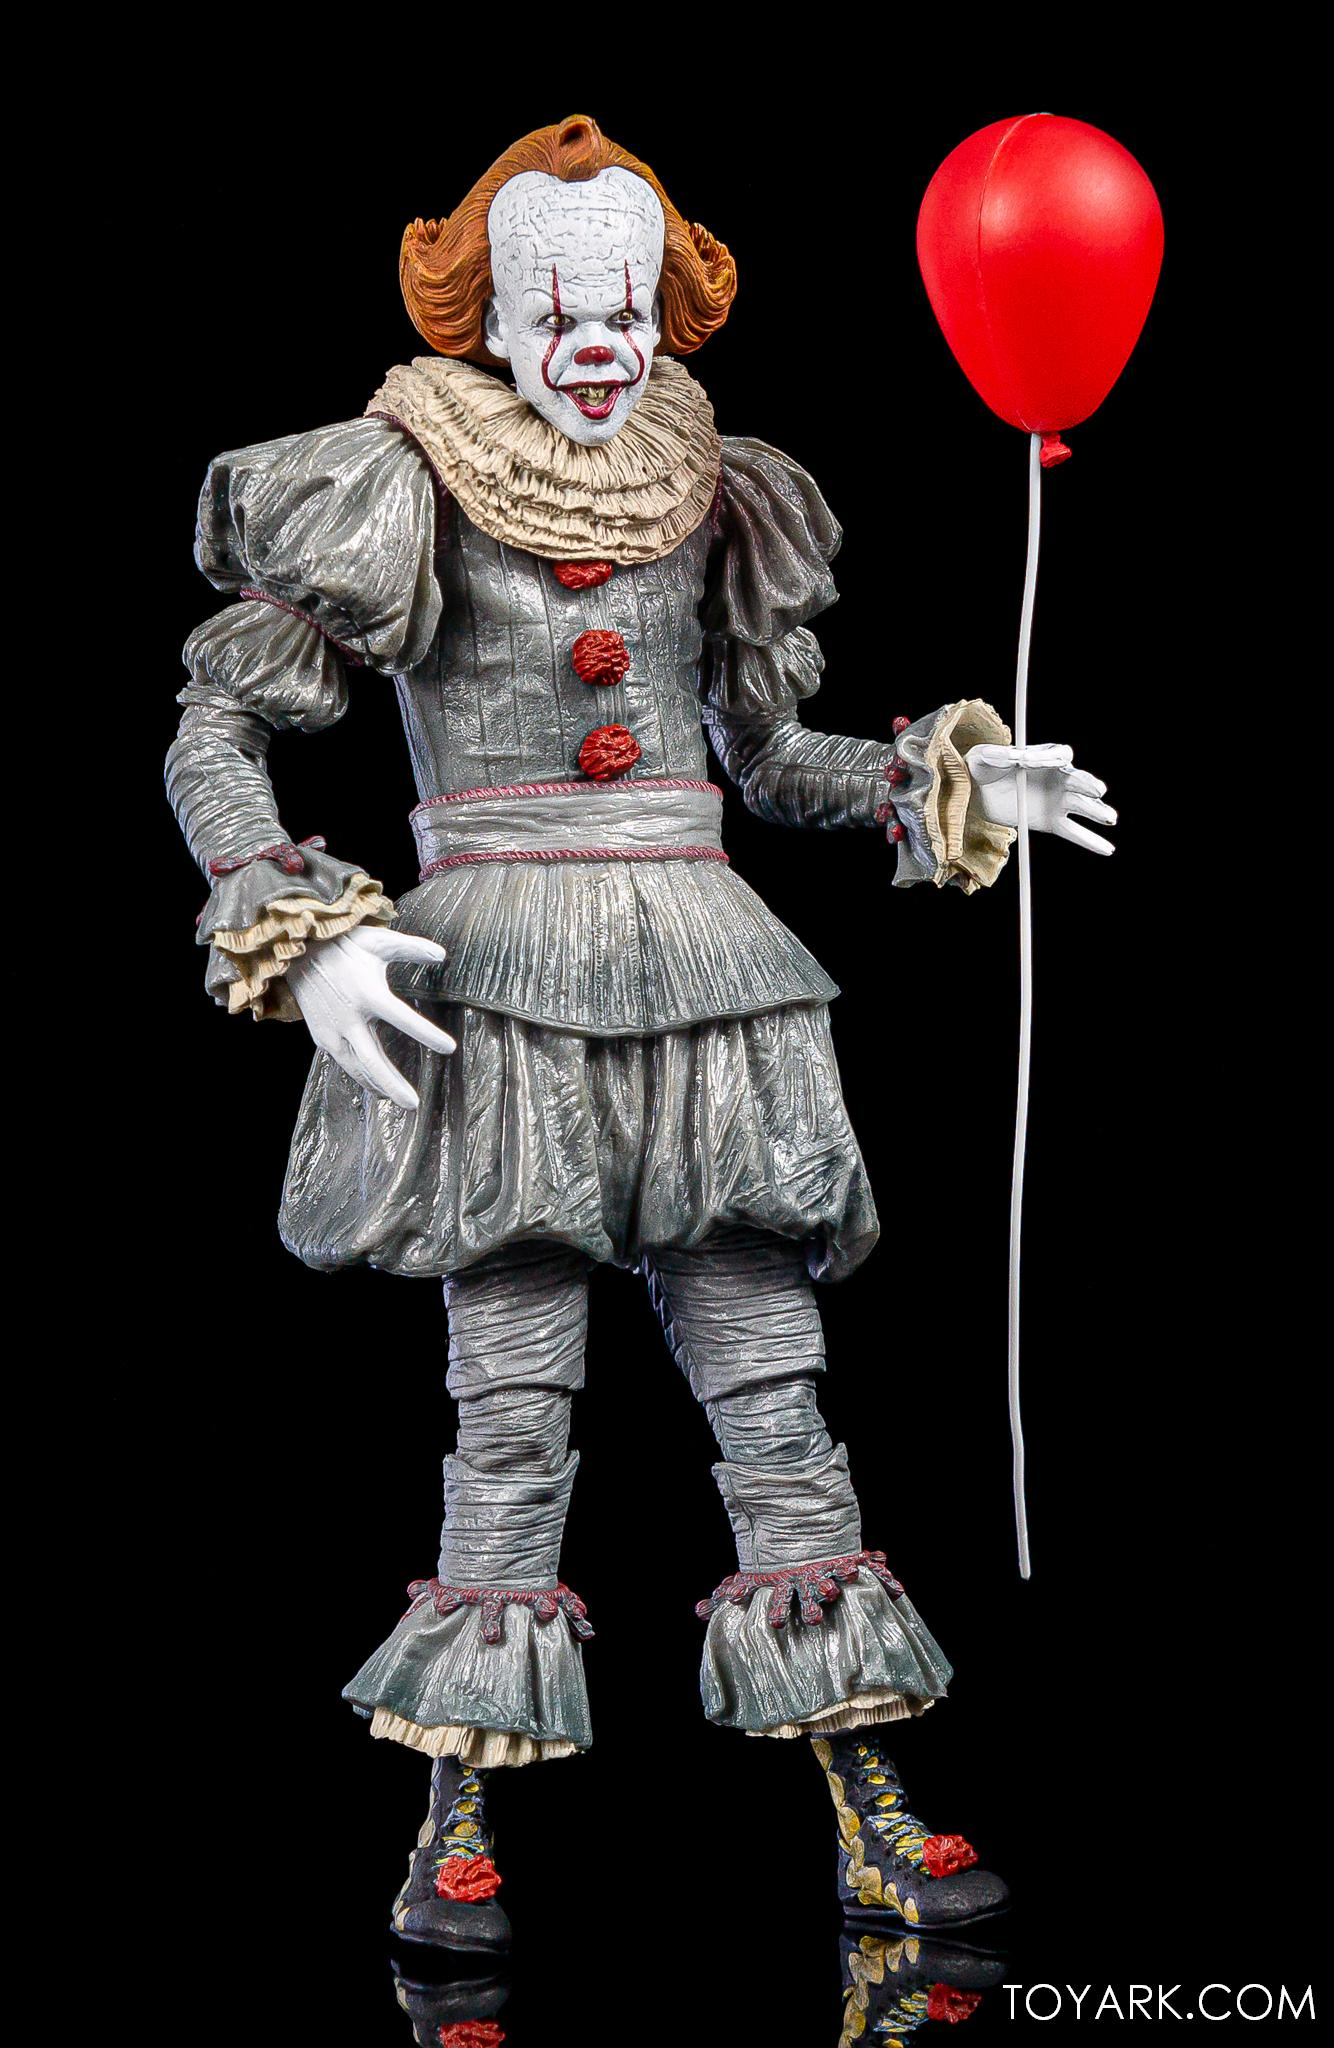 https://news.toyark.com/wp-content/uploads/sites/4/2020/06/NECA-IT-2-Ultimate-Pennywise-007.jpg